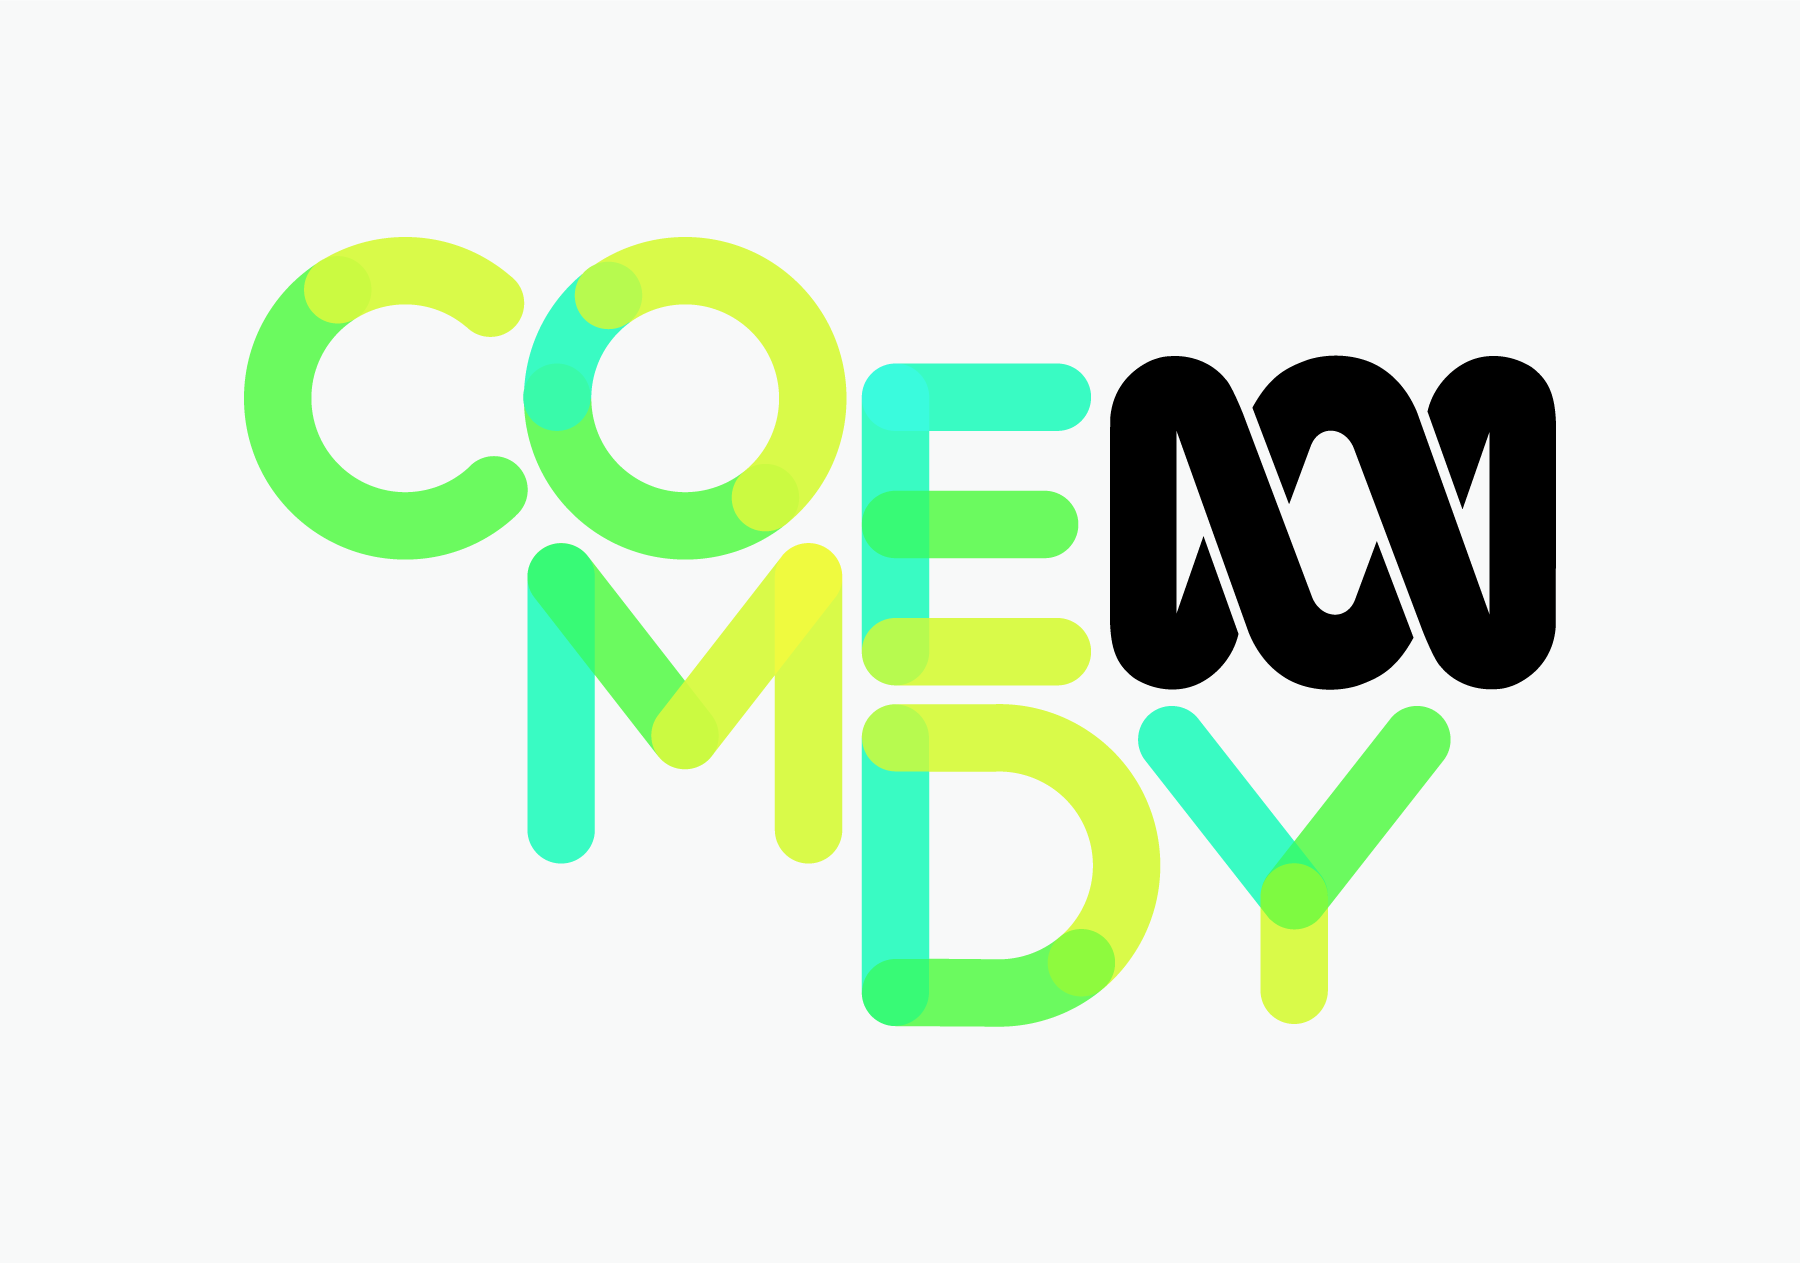 New ABC Comedy logo in detail